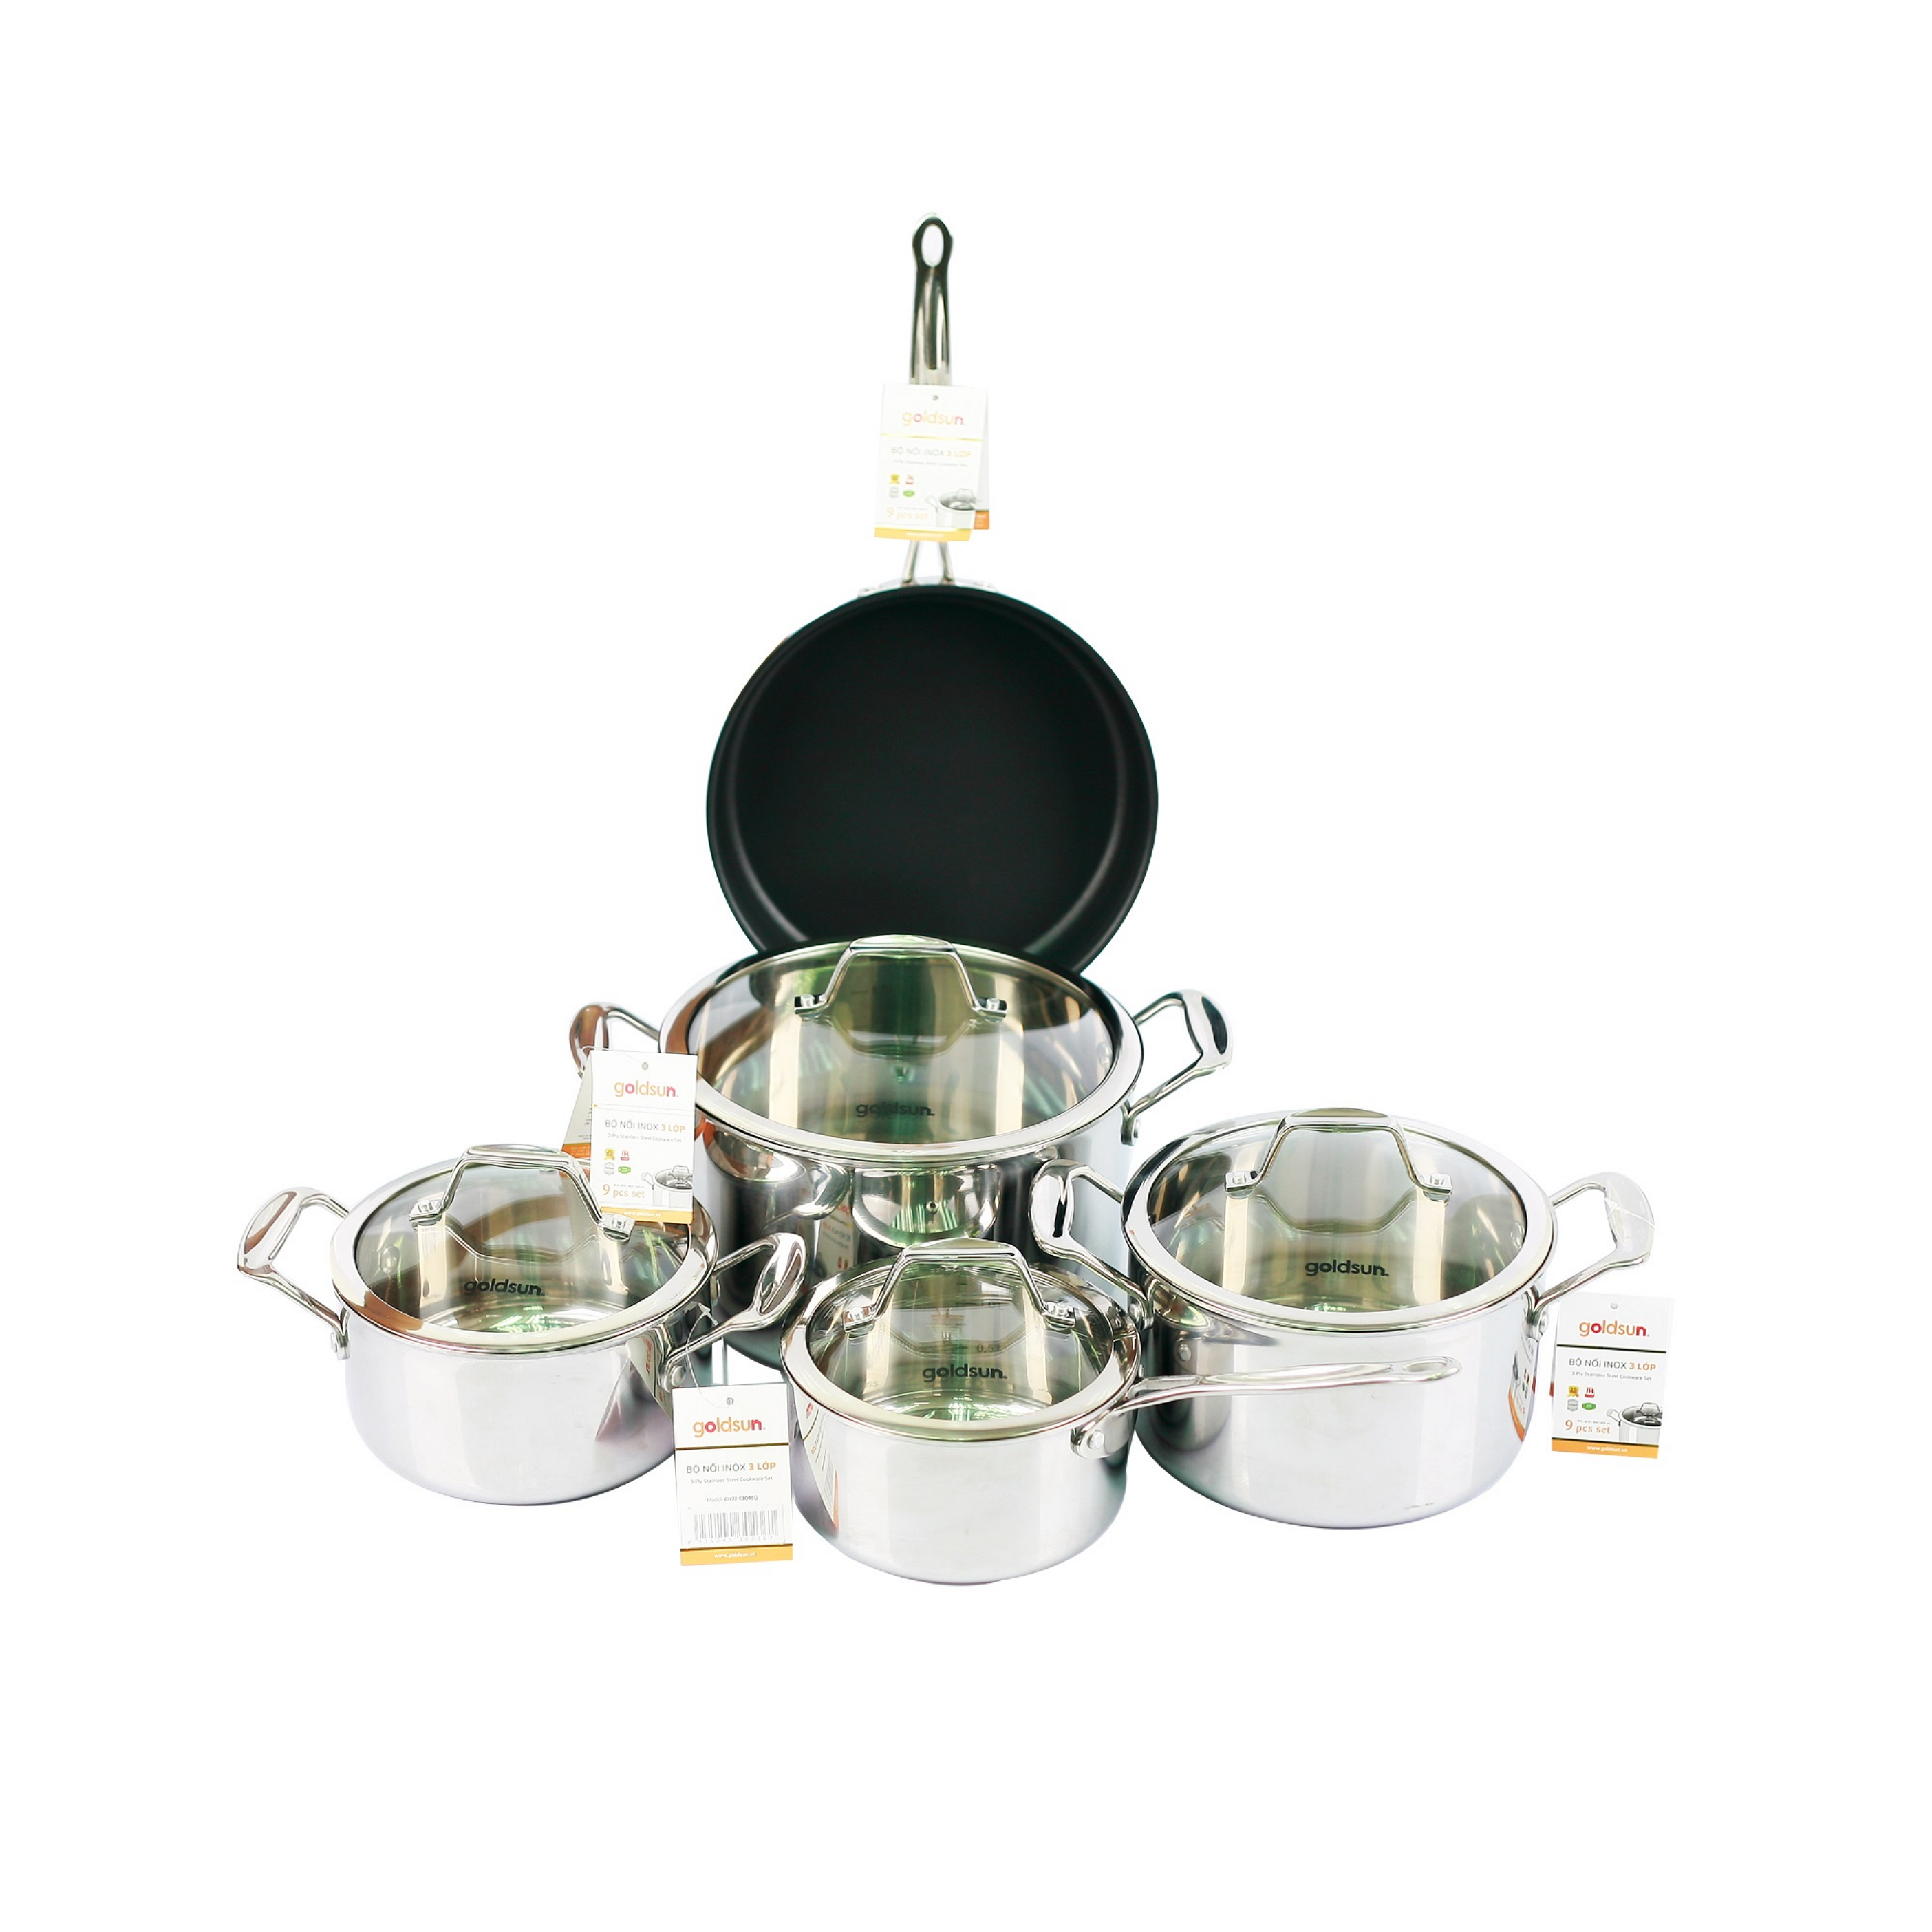 BEST PRICE !!! High quality 3pcs stainless steel pot set and 1 stainless steel sauce pan and non-stick pan (GOLDSUN)